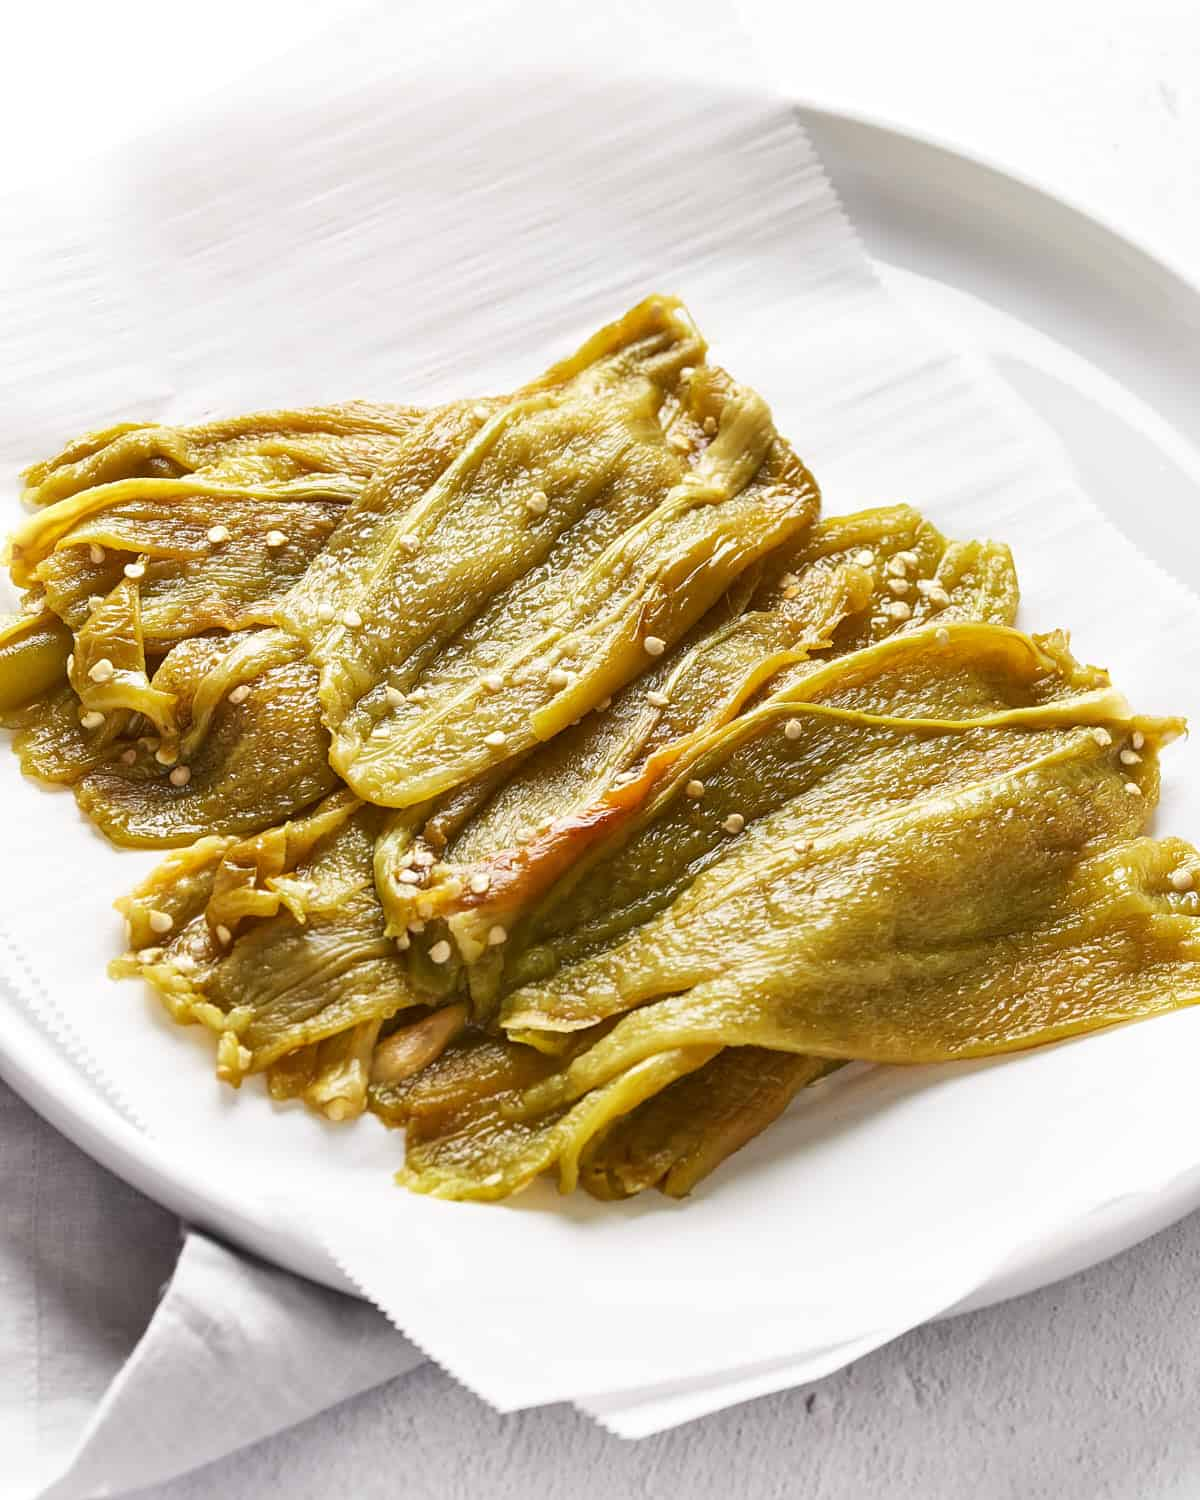 Peeled and seeded New Mexico Hatch chiles on a white plate_Resplendent Kitchen